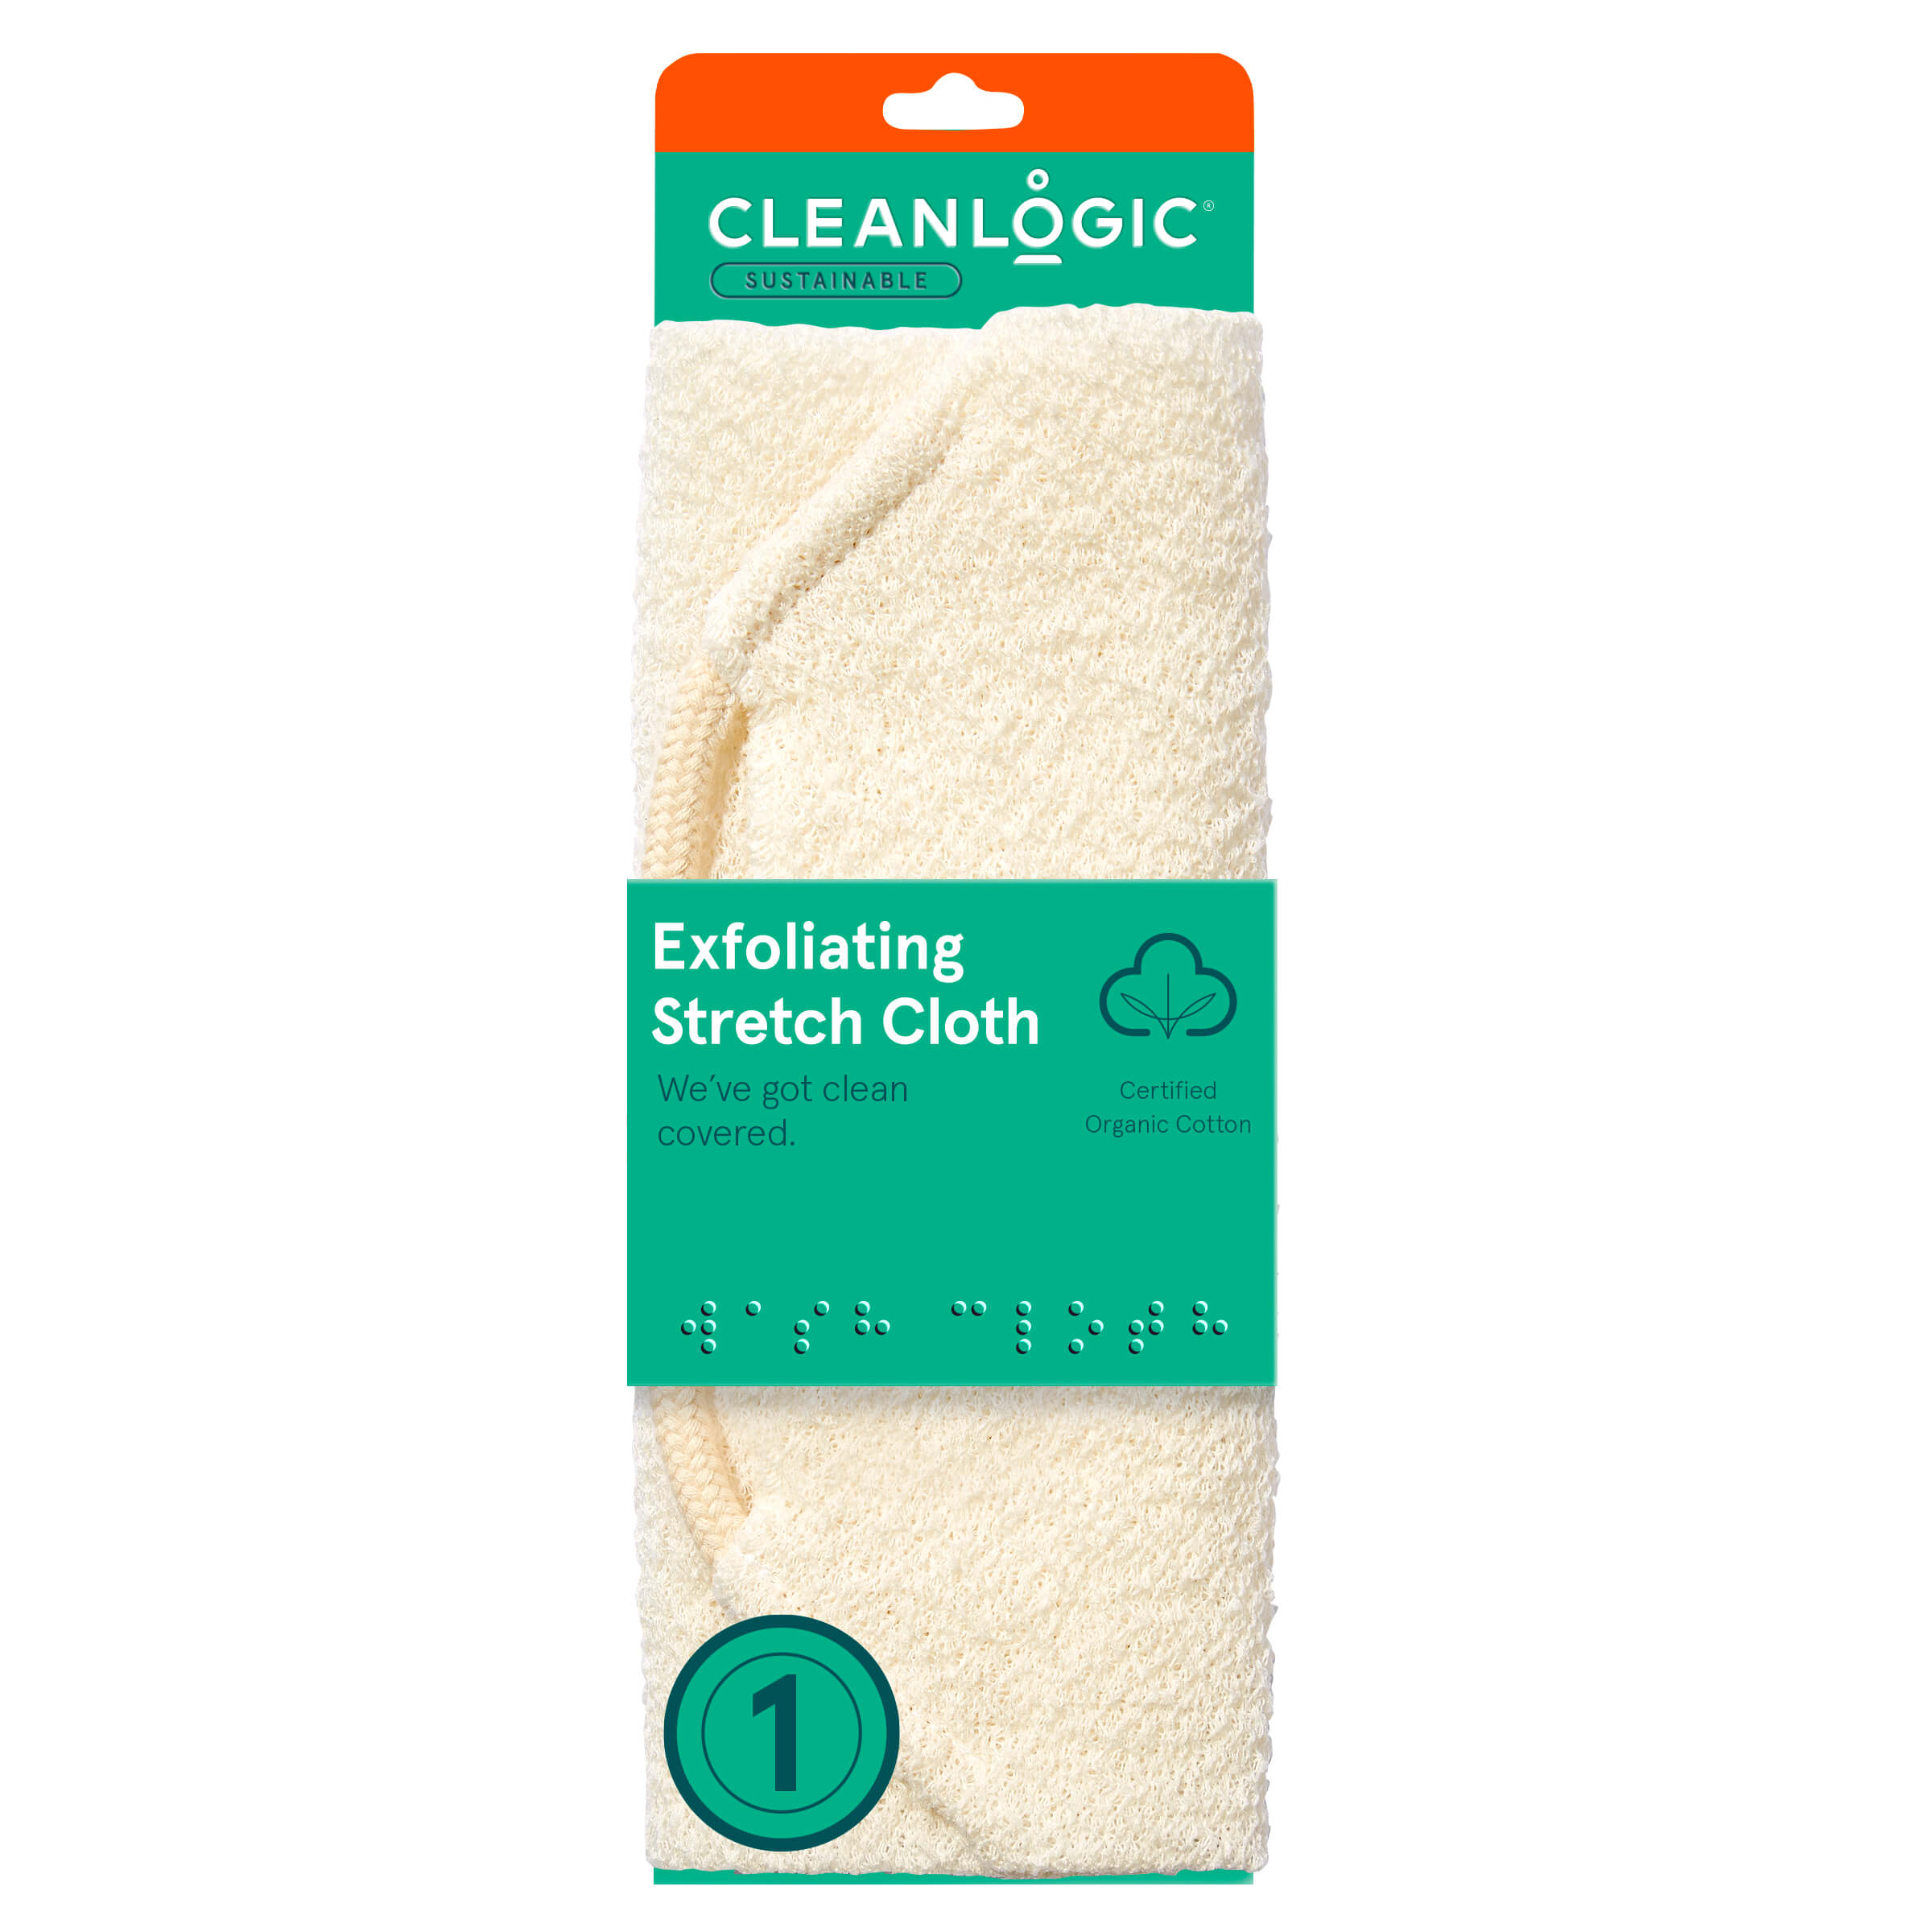 Cleanlogic Sustainable Exfoliating Stretch Cloth